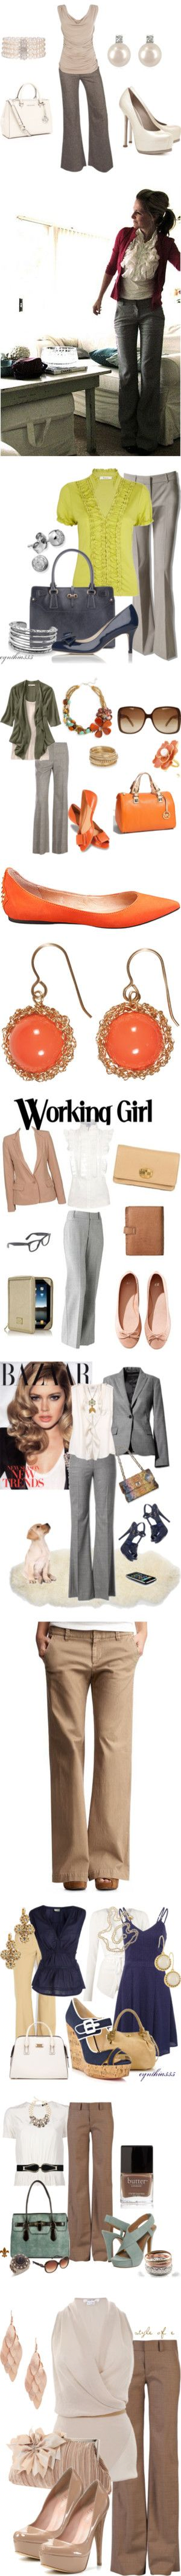 lots of work outfit inspiration  While the heels would kill me, love the clothes.